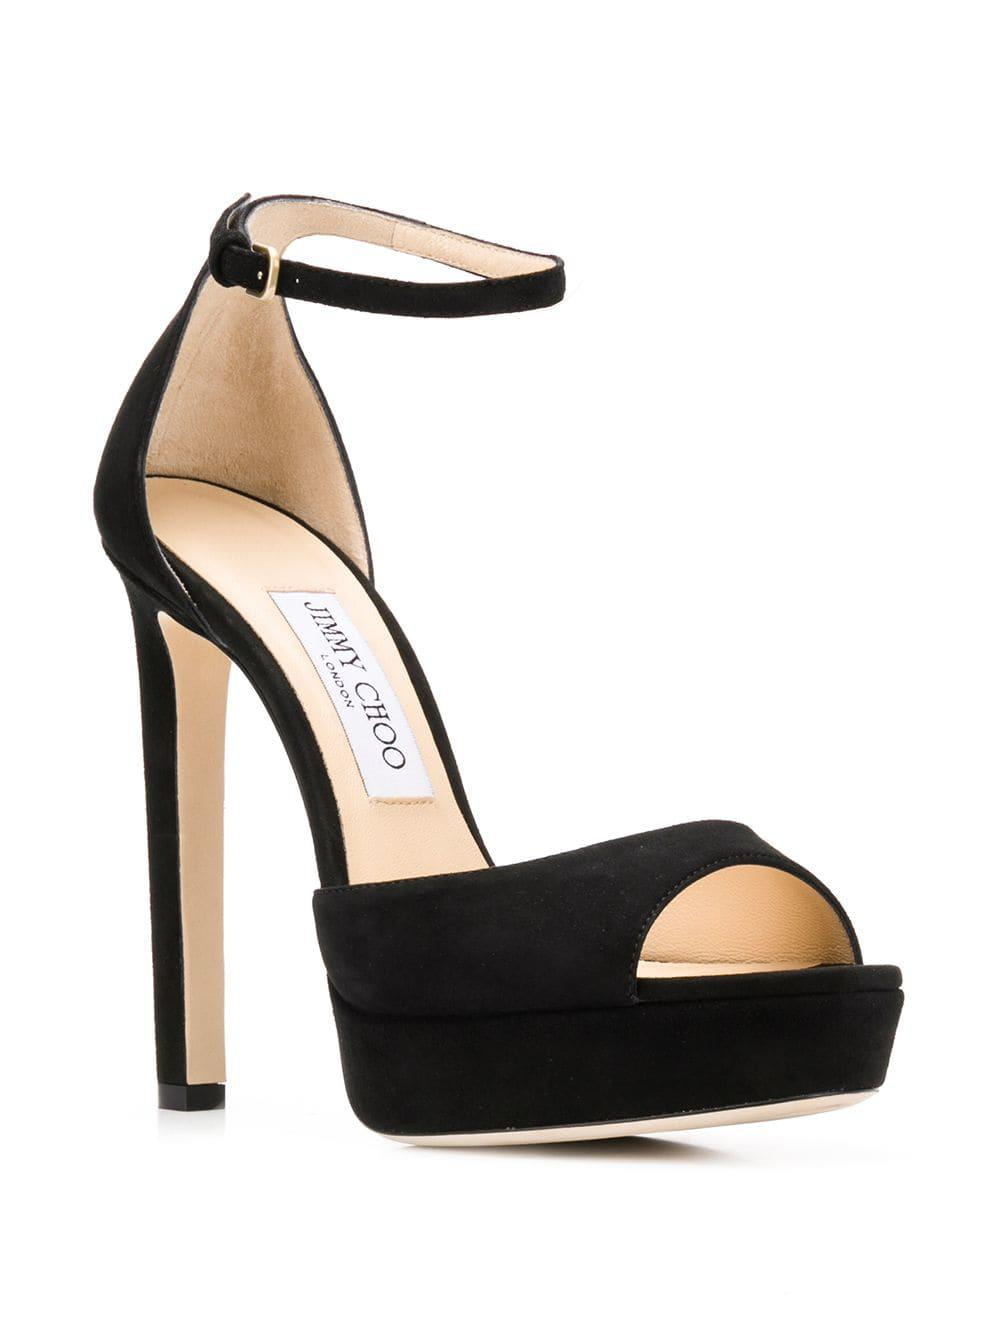 1a3f0b45366 Lyst - Jimmy Choo Pattie 130 Sandals in Black